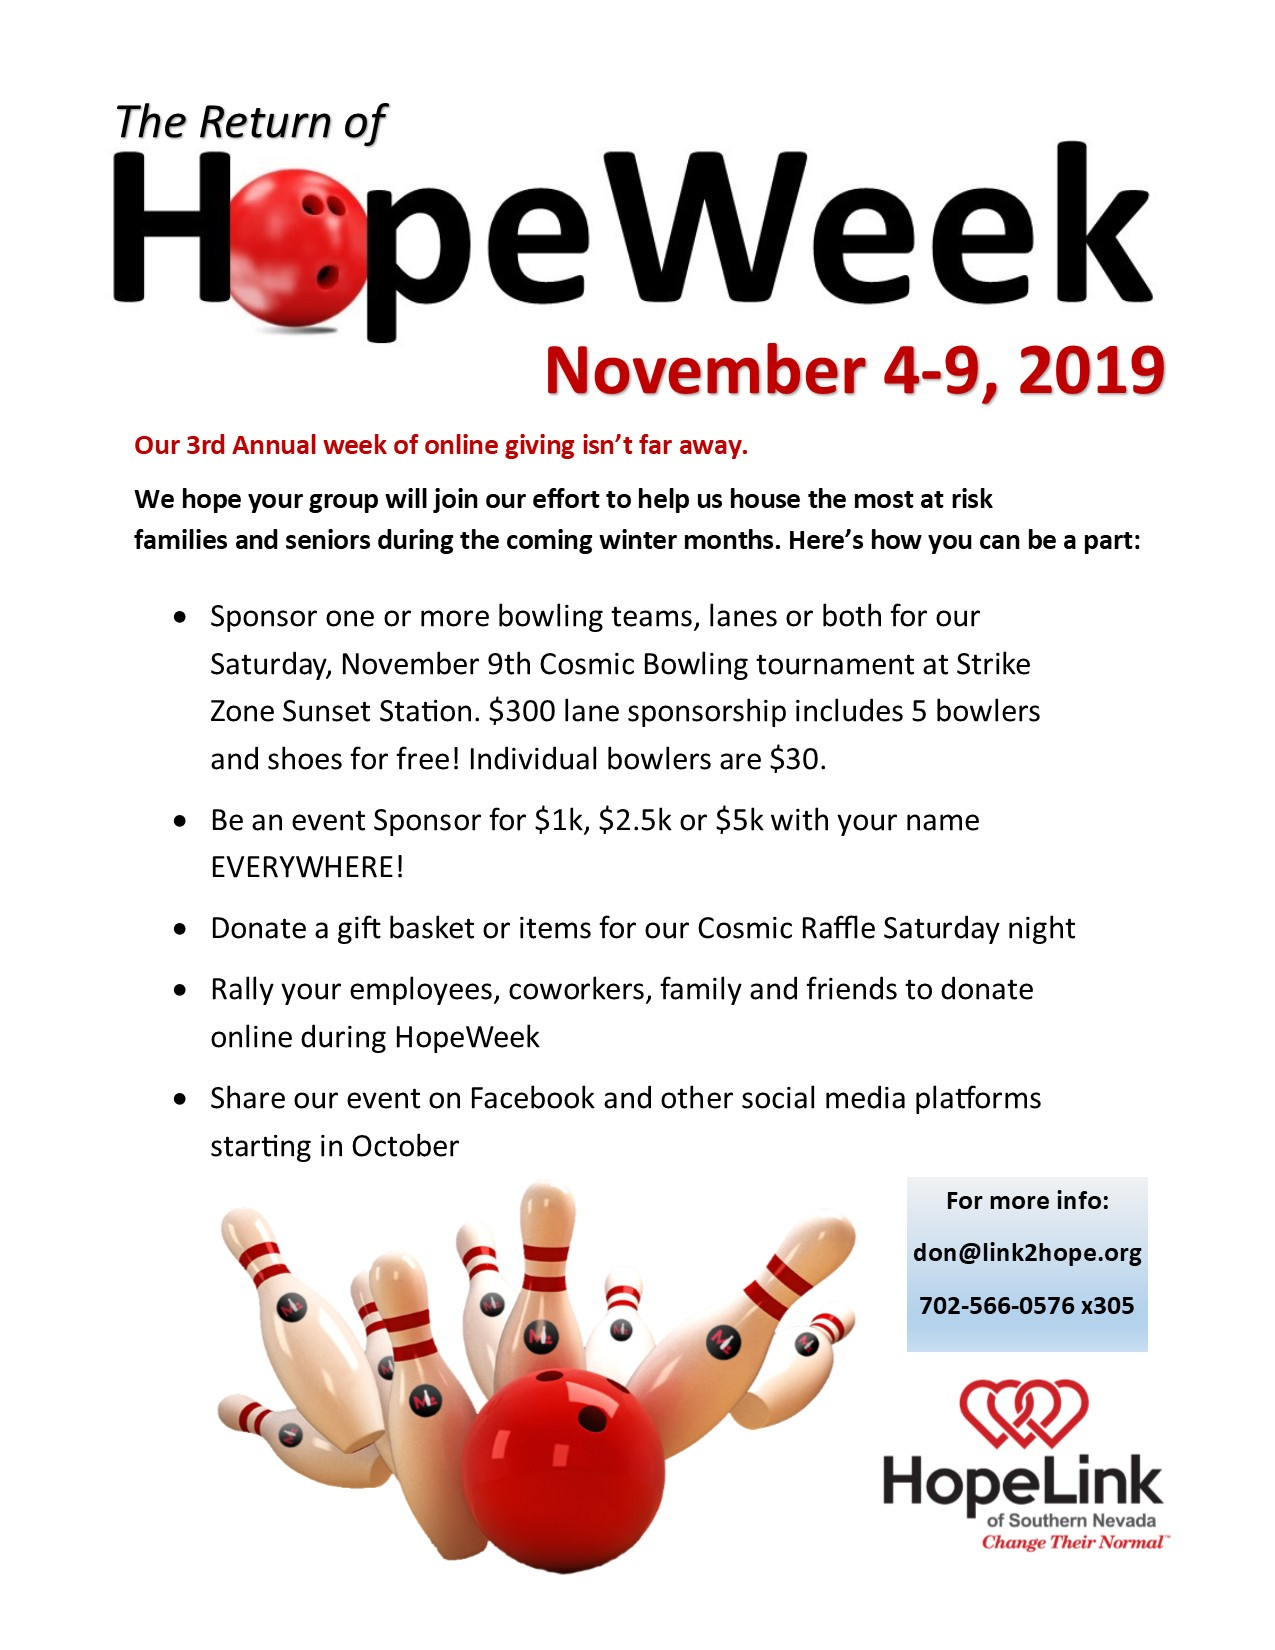 The Return of HopeWeek! Nov. 4-9